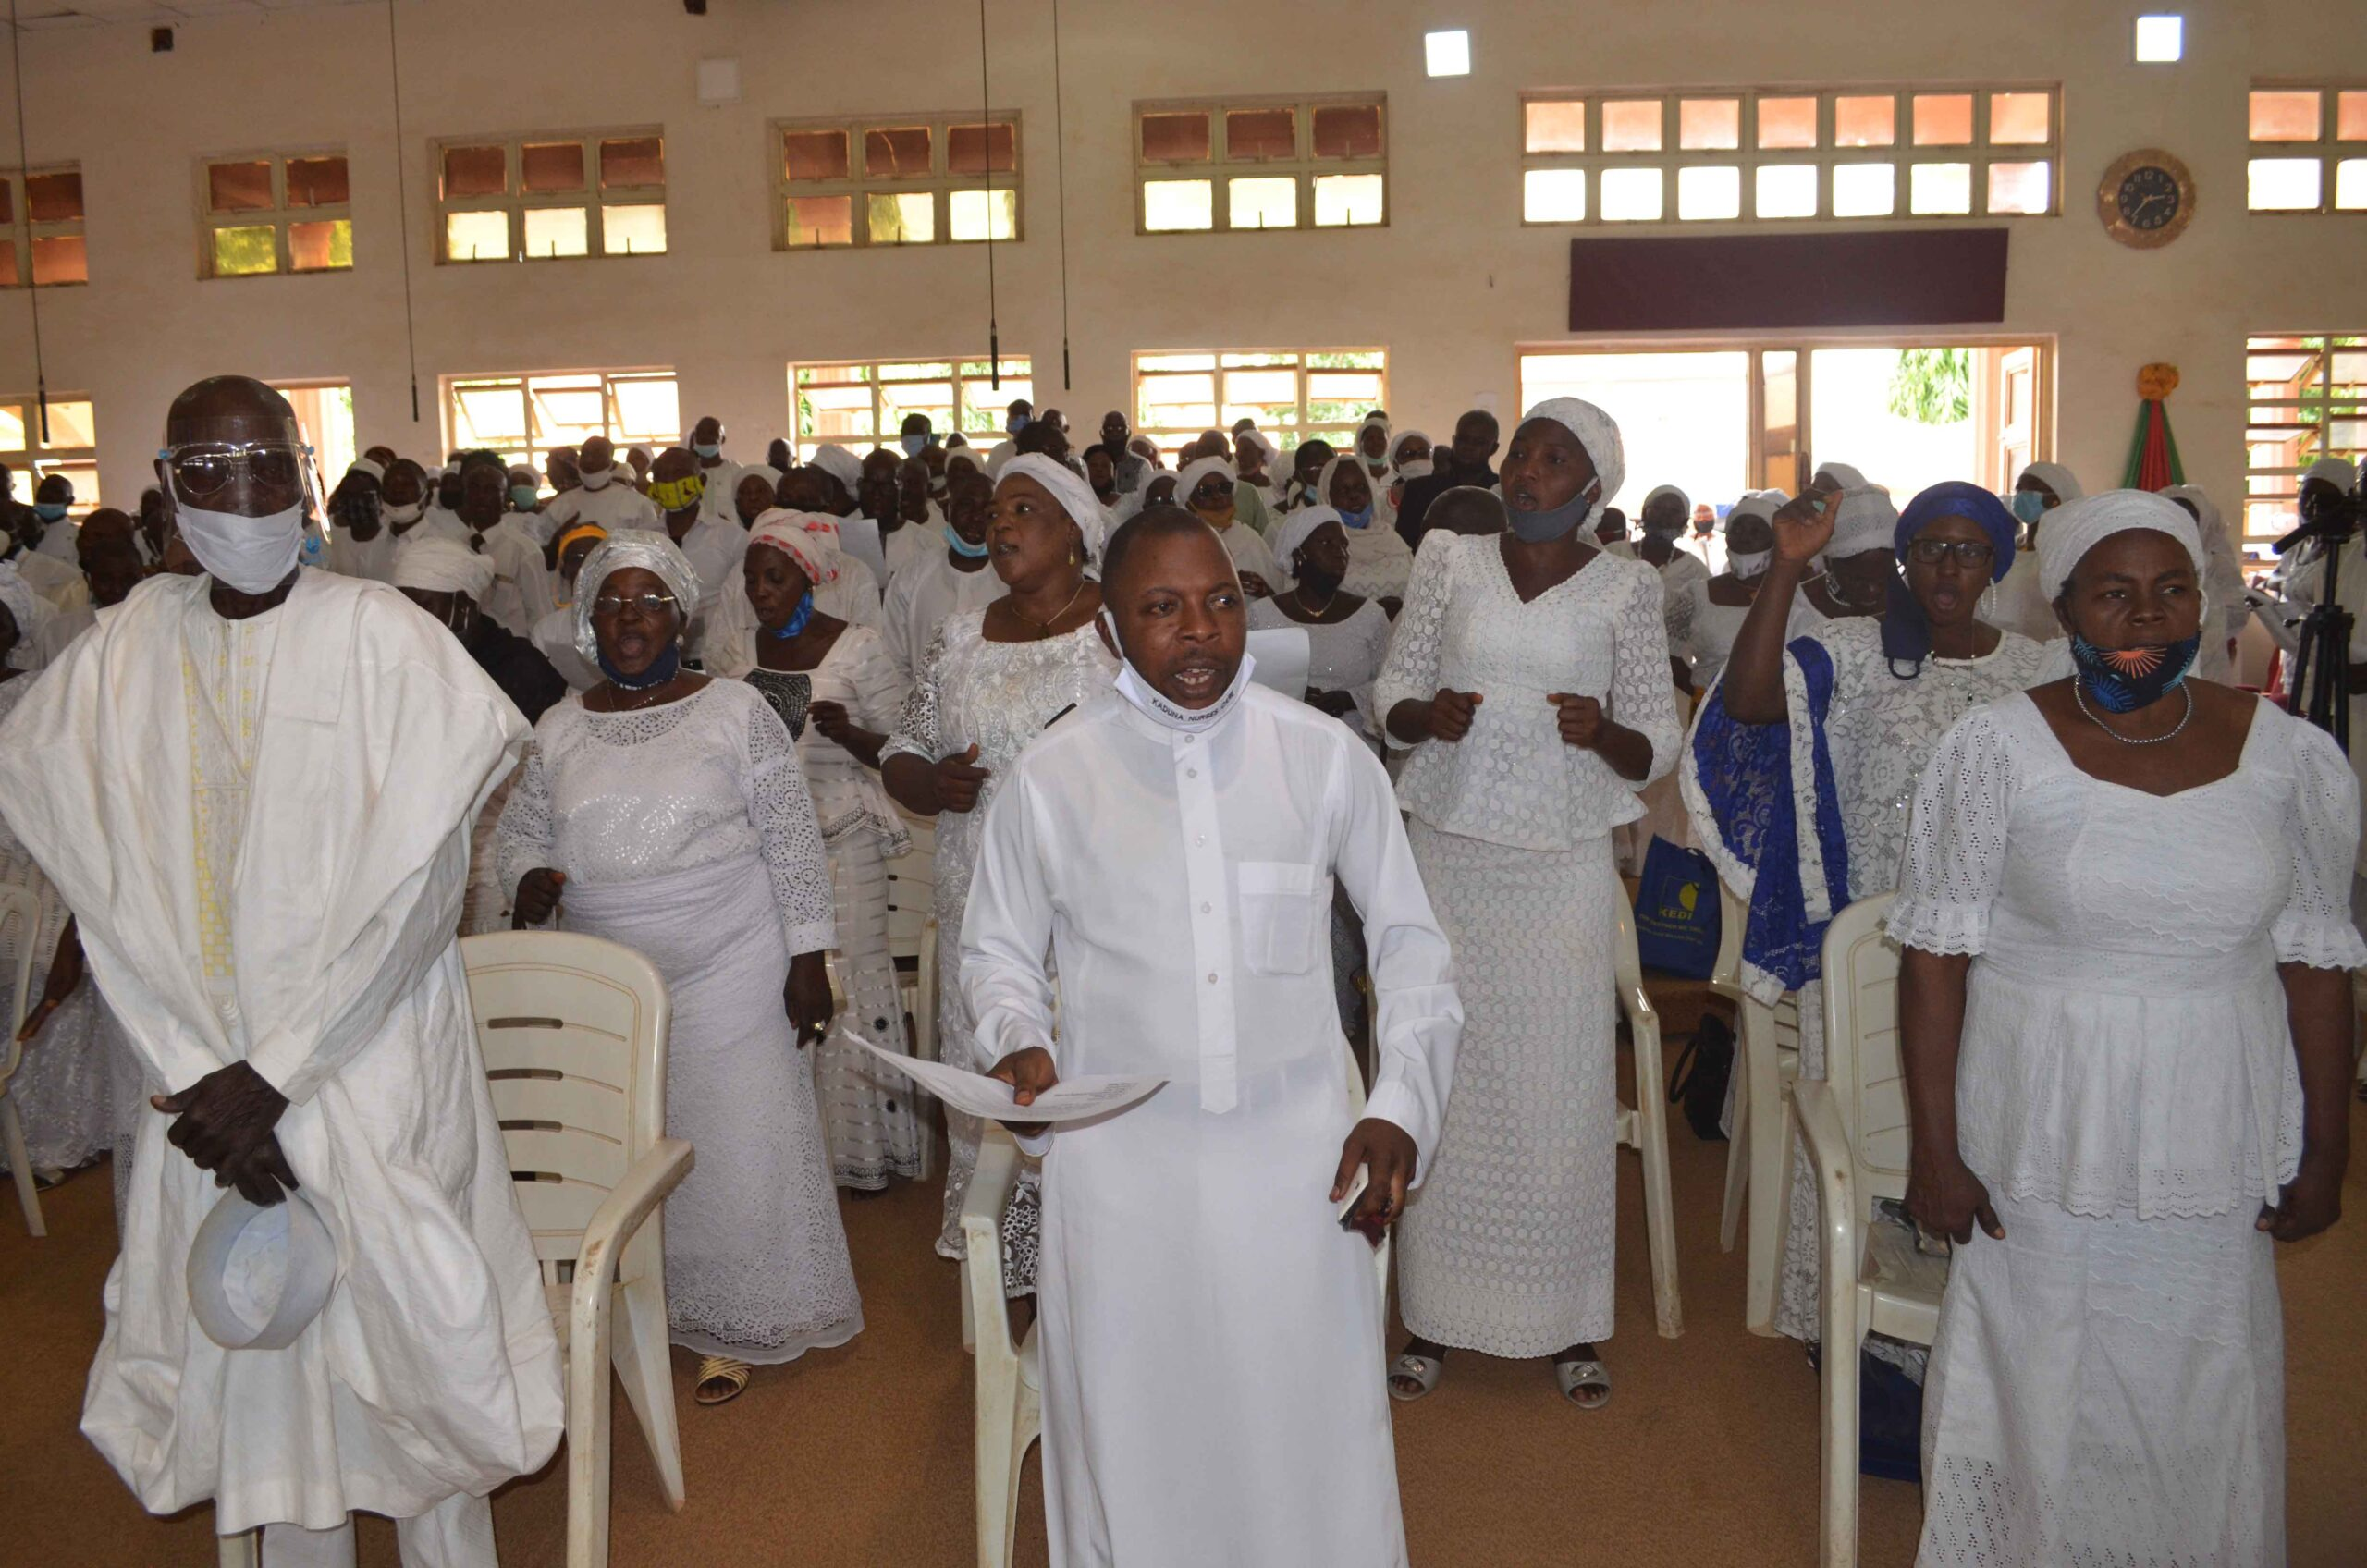 DSC 0319 5042d75c7bddab71aab0ce8ea18d8db4 scaled - Kaduna Killings: CAN President joins Protest, calls on Christians to rise and defend themselves